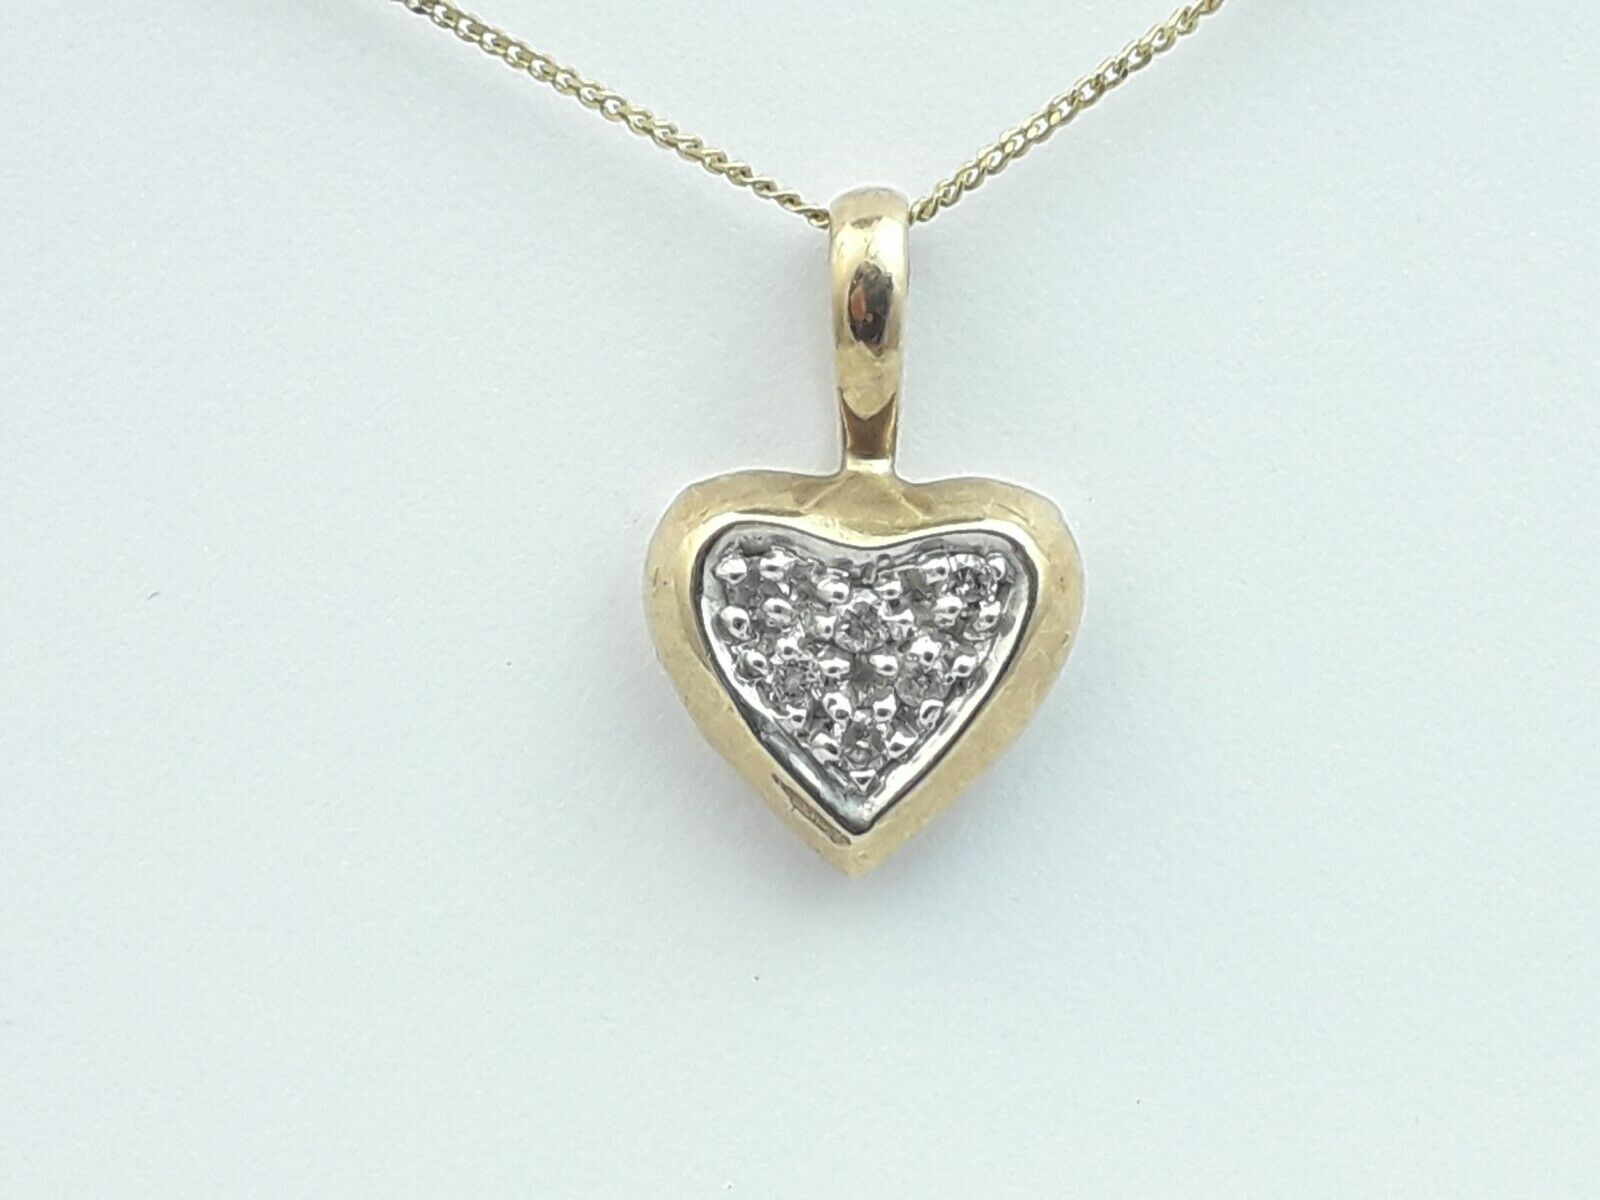 Gorgeous 9ct gold & Diamond Heart Shaped Pendant On 9ct gold Chain.